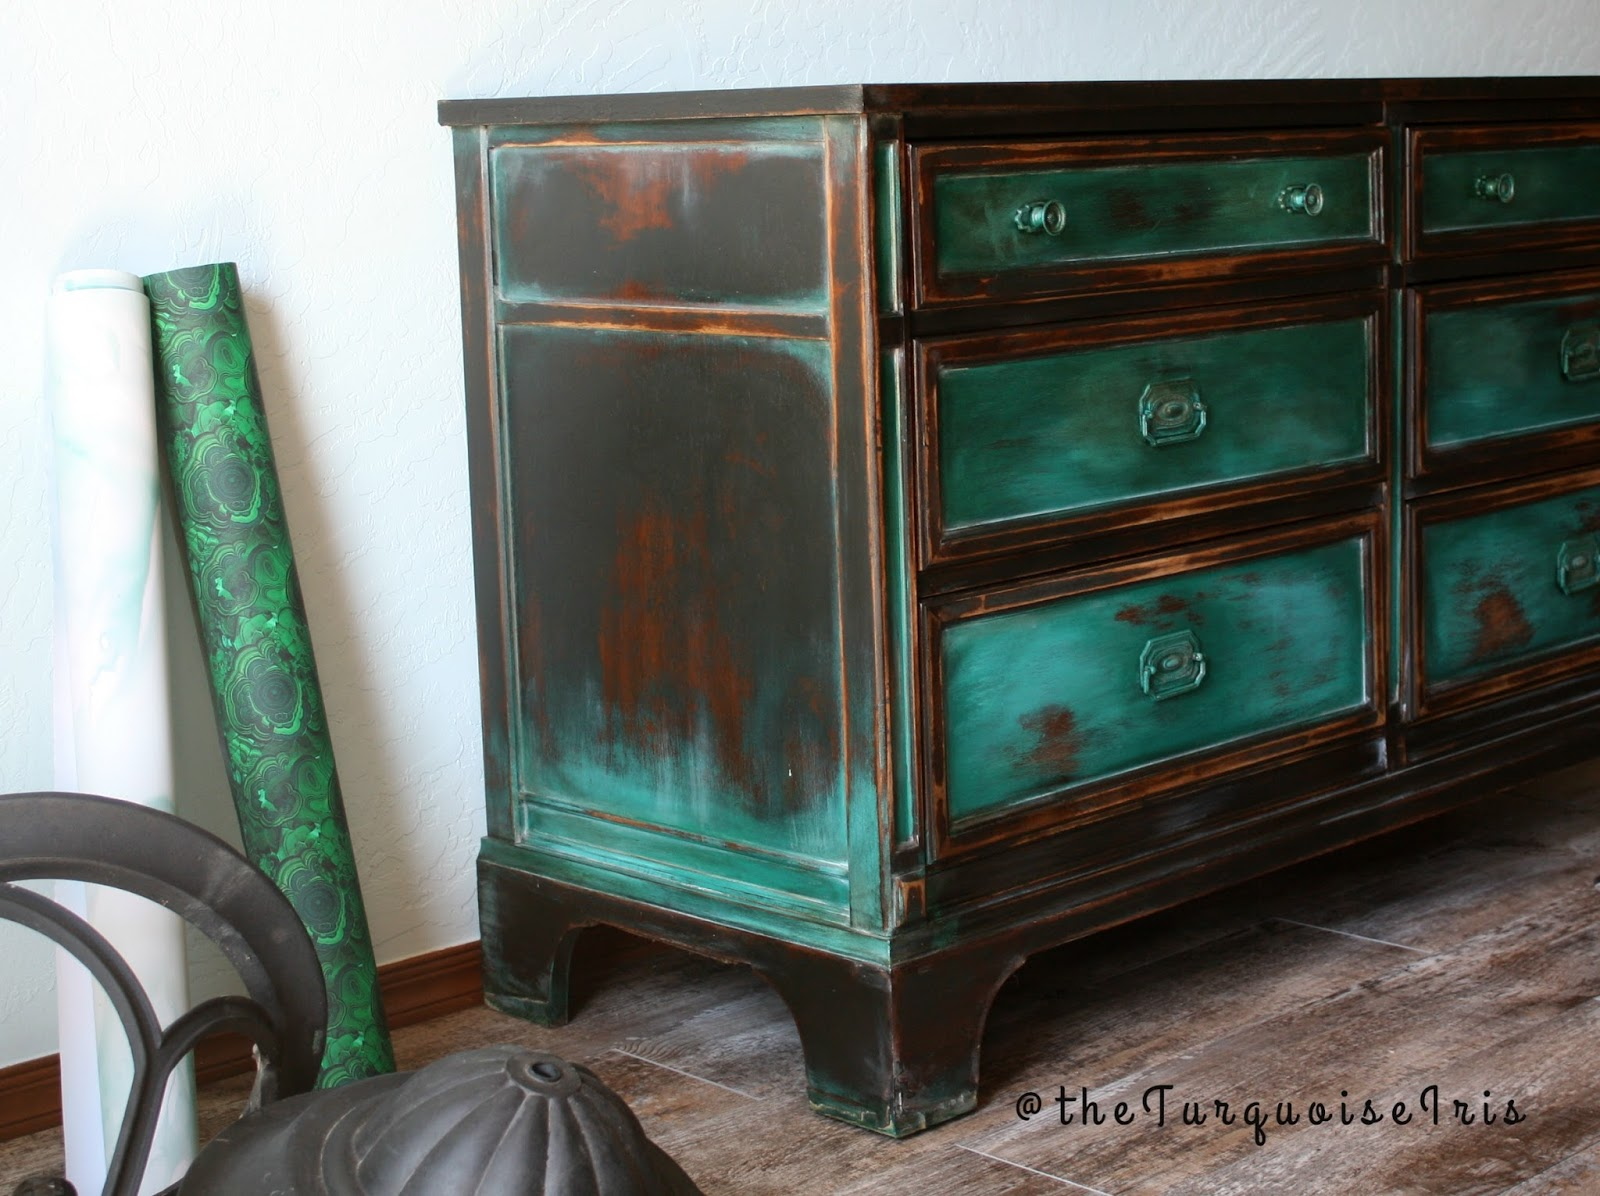 The Turquoise Iris Furniture Art A Gorgeous Teal Green Dresser Furniture Makeover 5 Of My